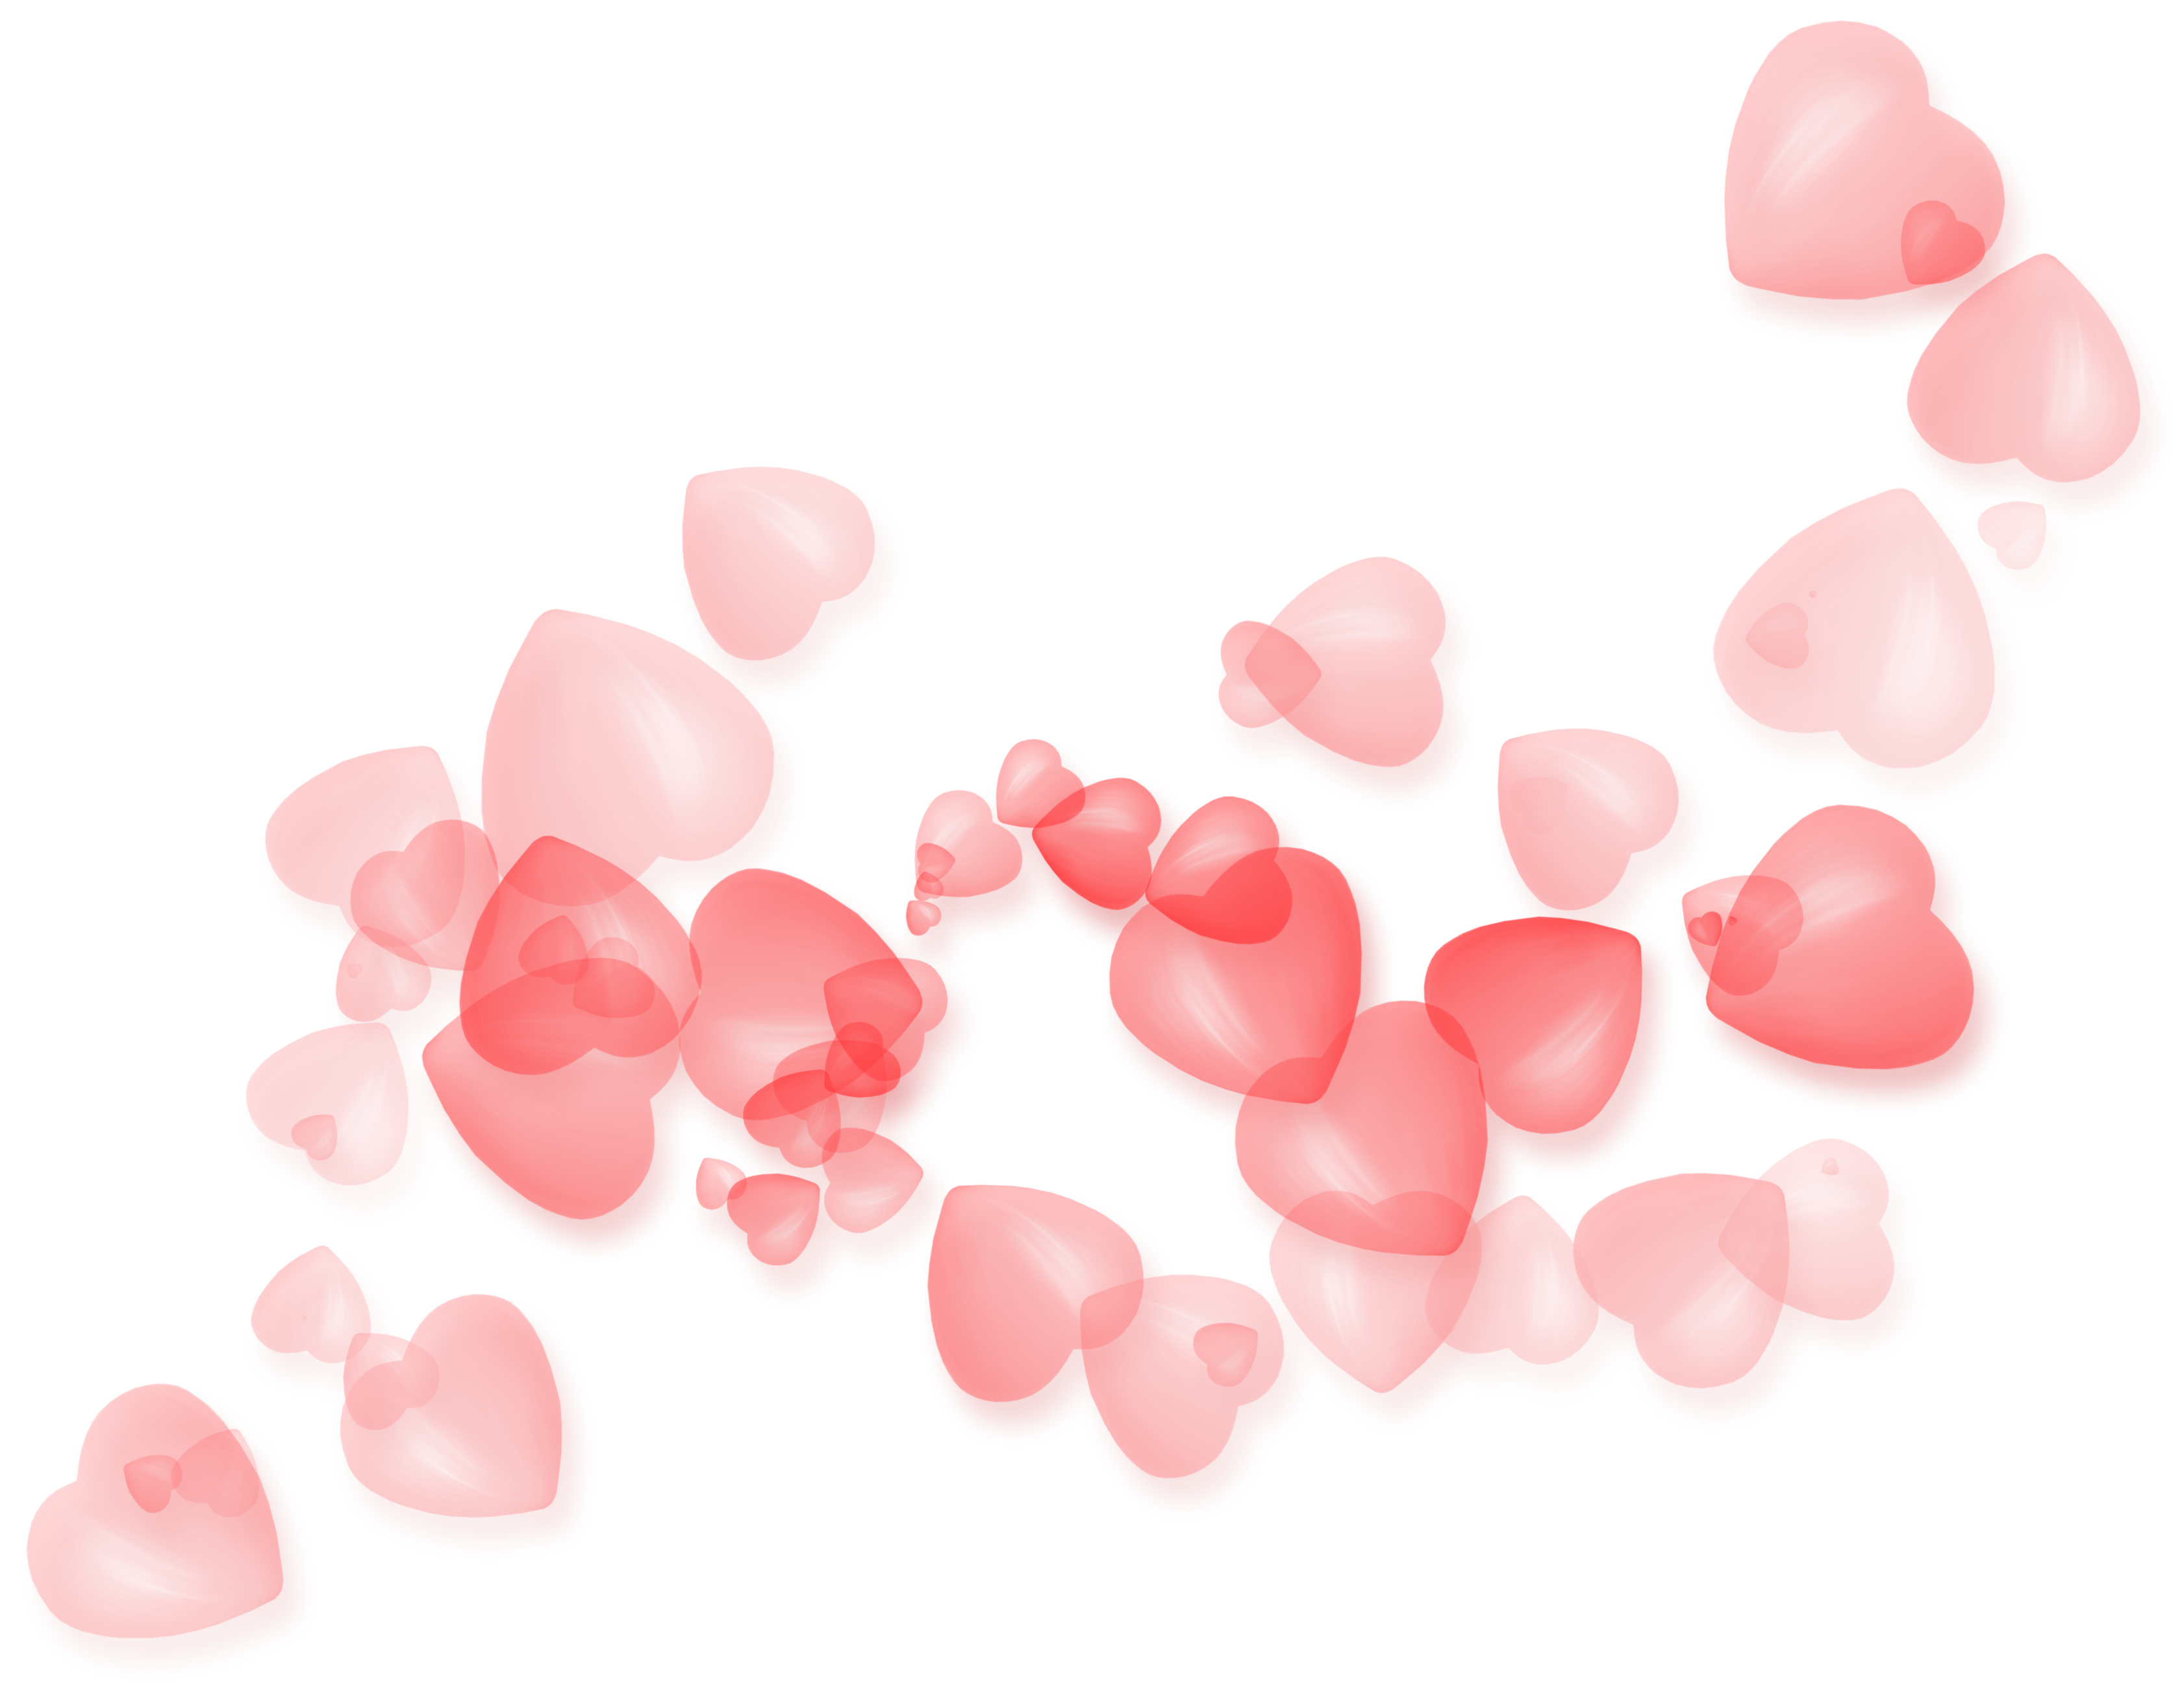 Decor png picture gallery. Hearts clipart transparent background